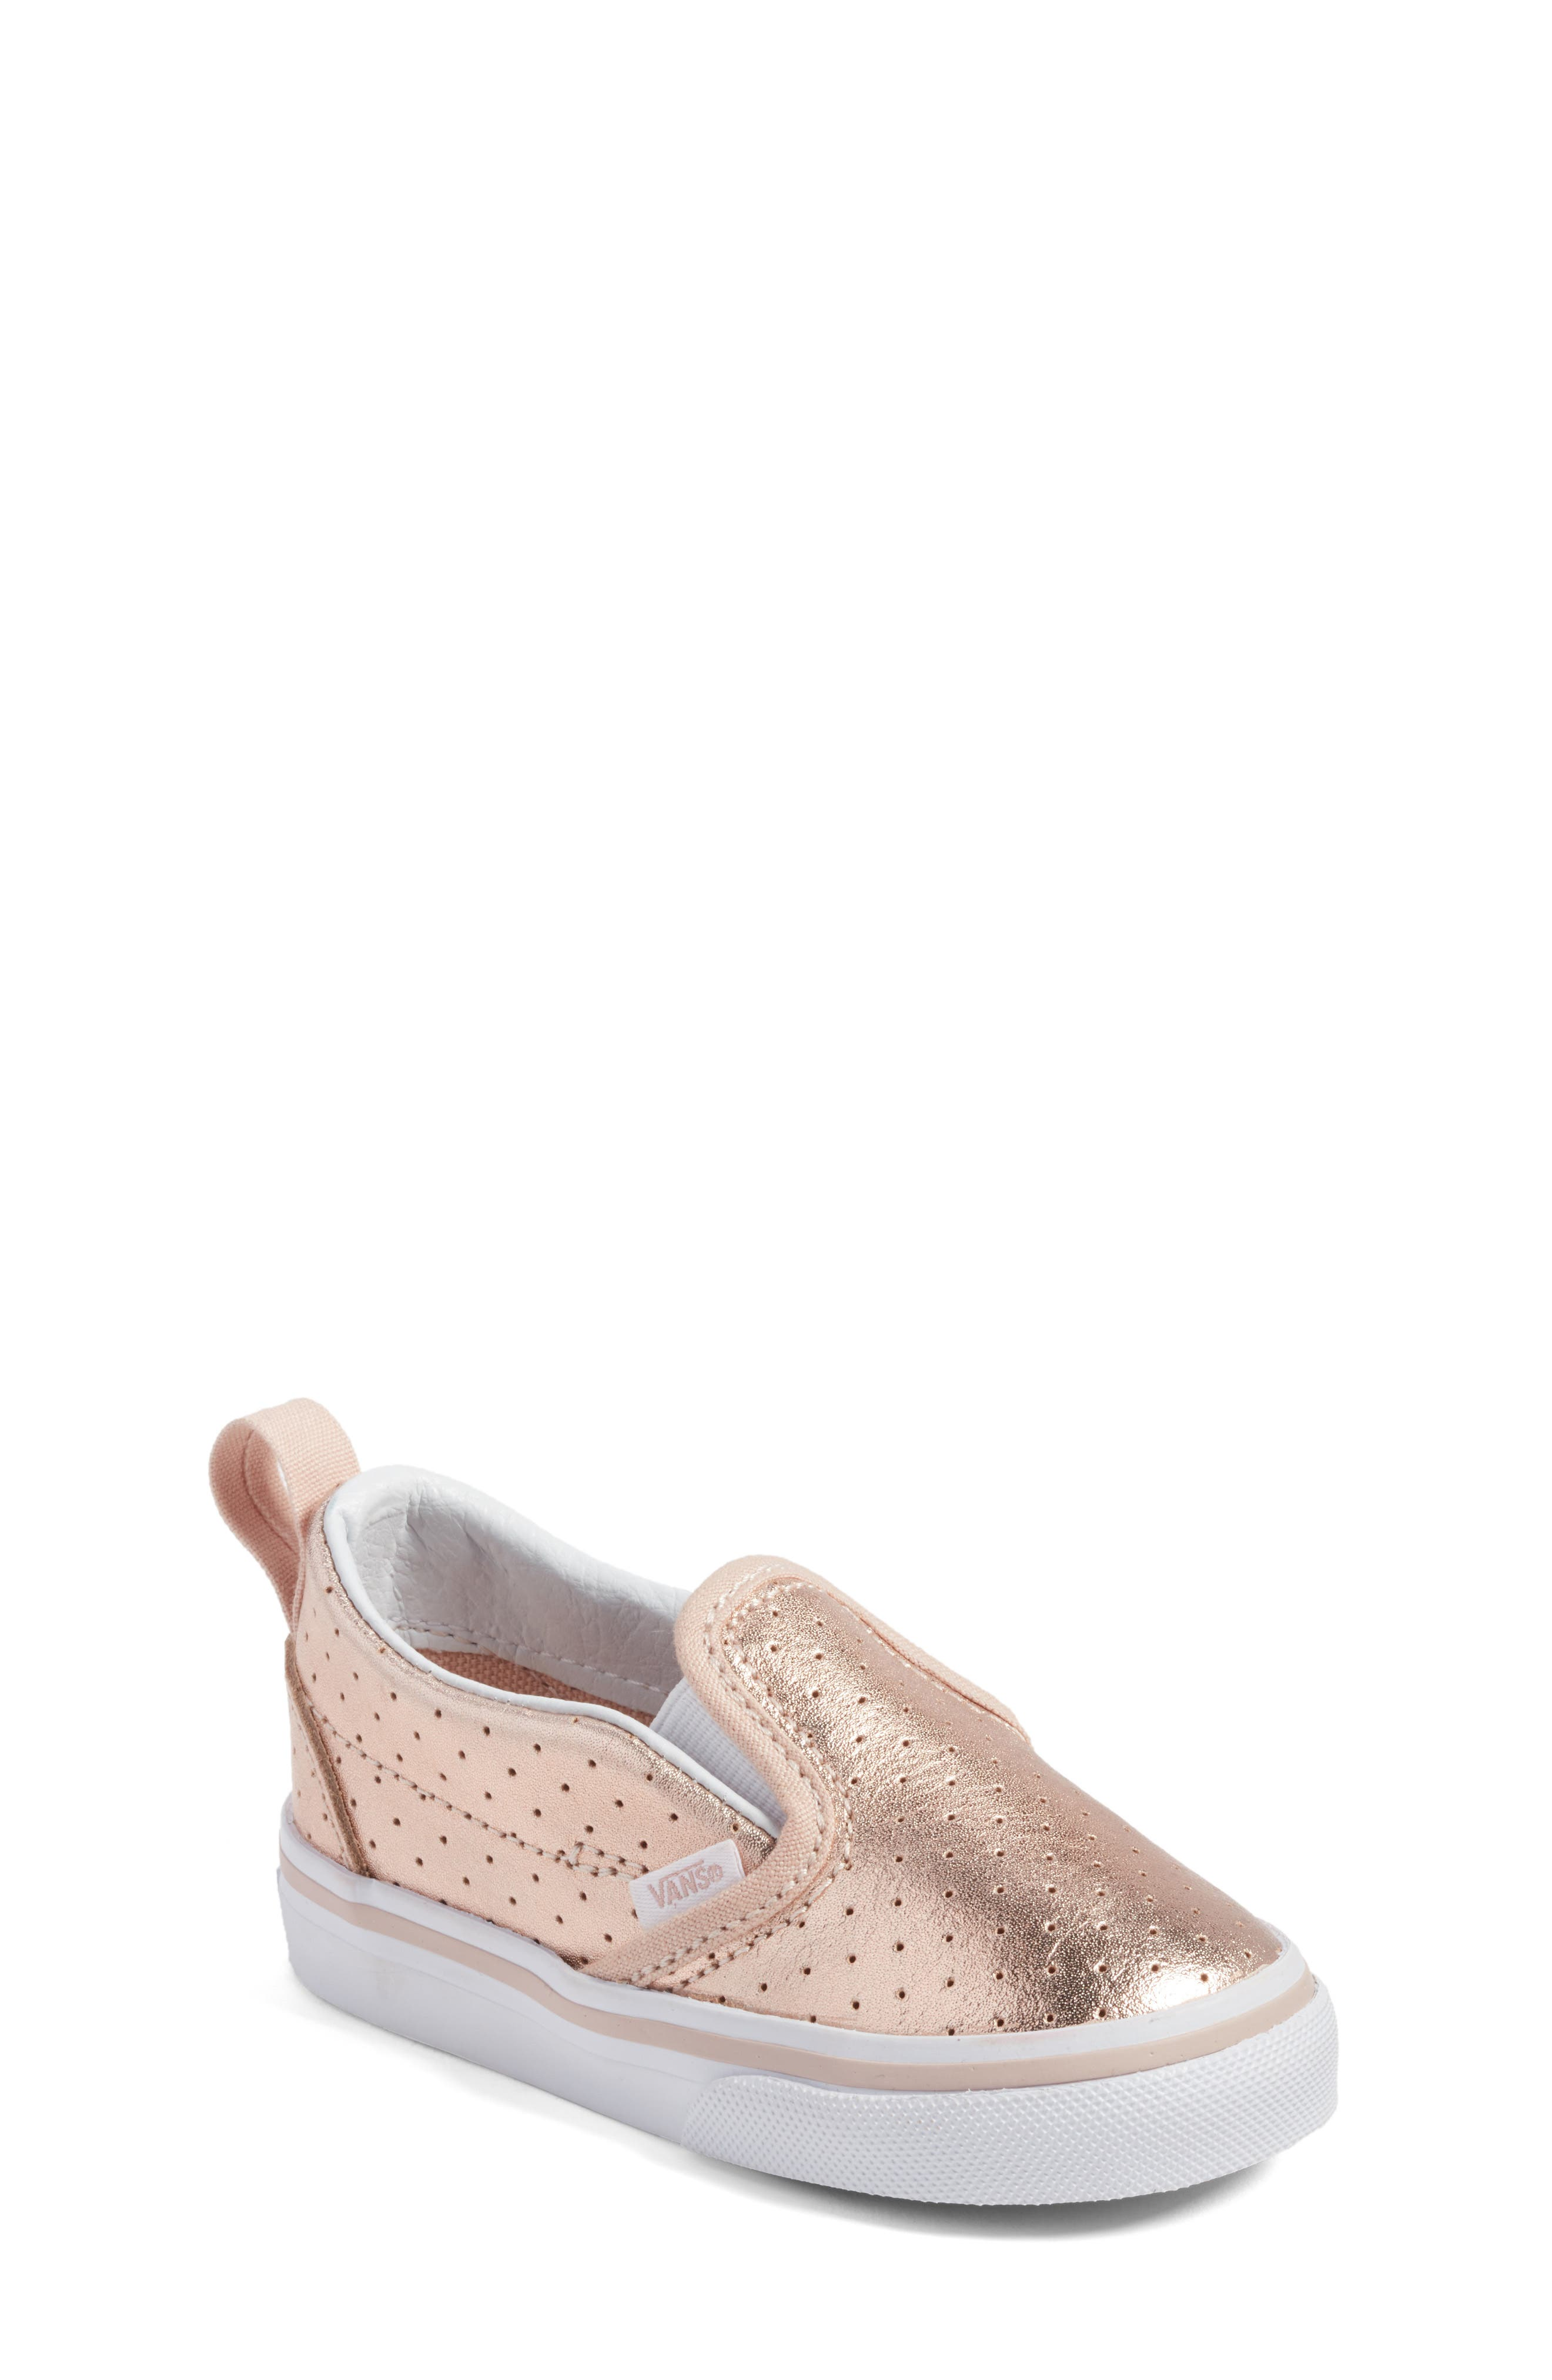 'Classic' Slip-On Sneaker,                             Main thumbnail 1, color,                             Rose Gold Perf Leather